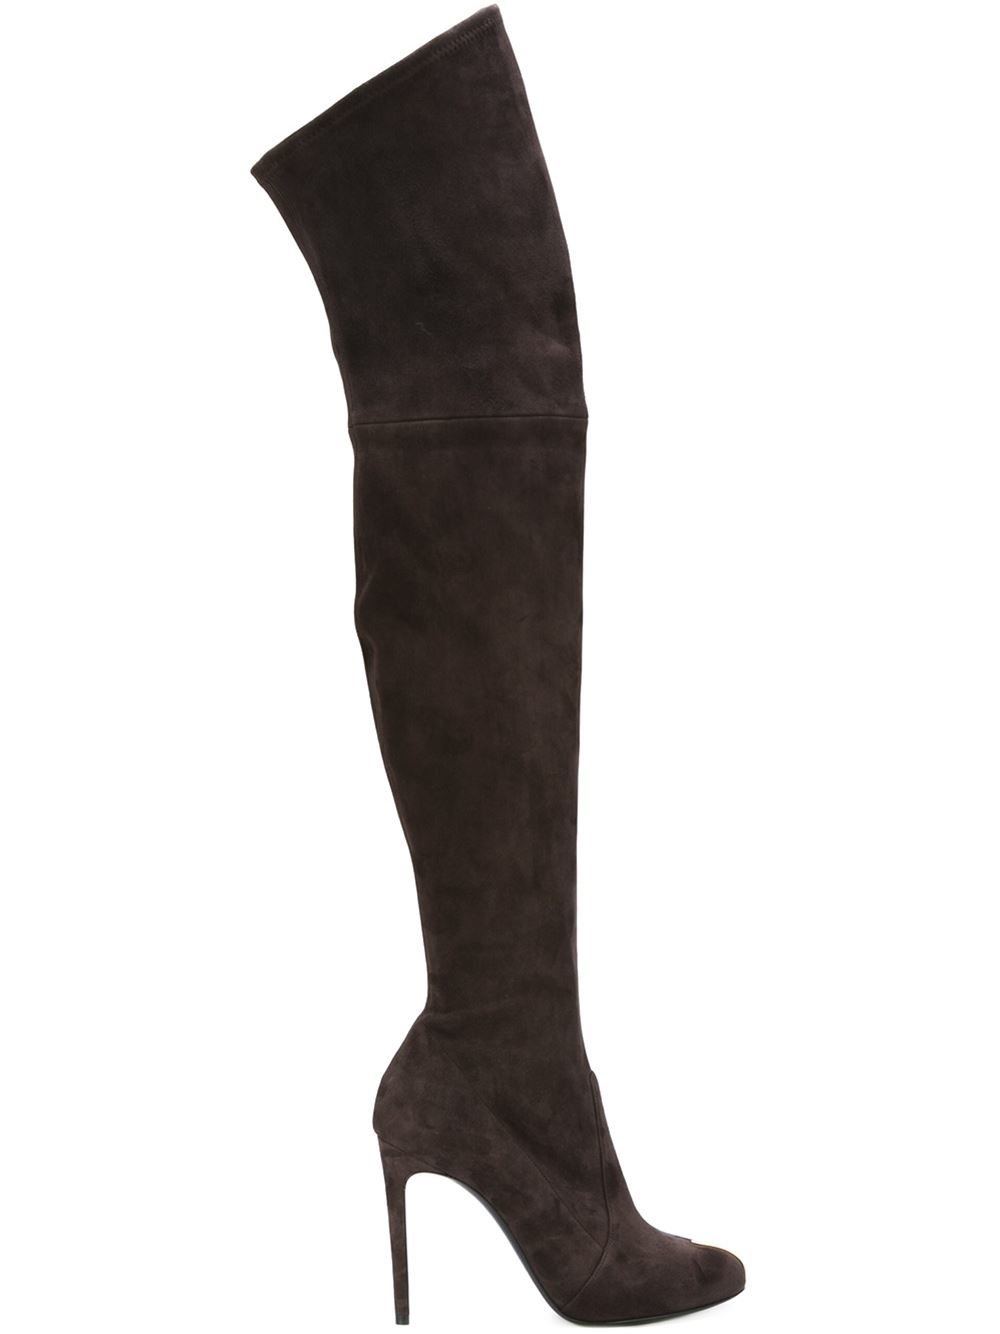 casadei thigh high stiletto boots in brown lyst